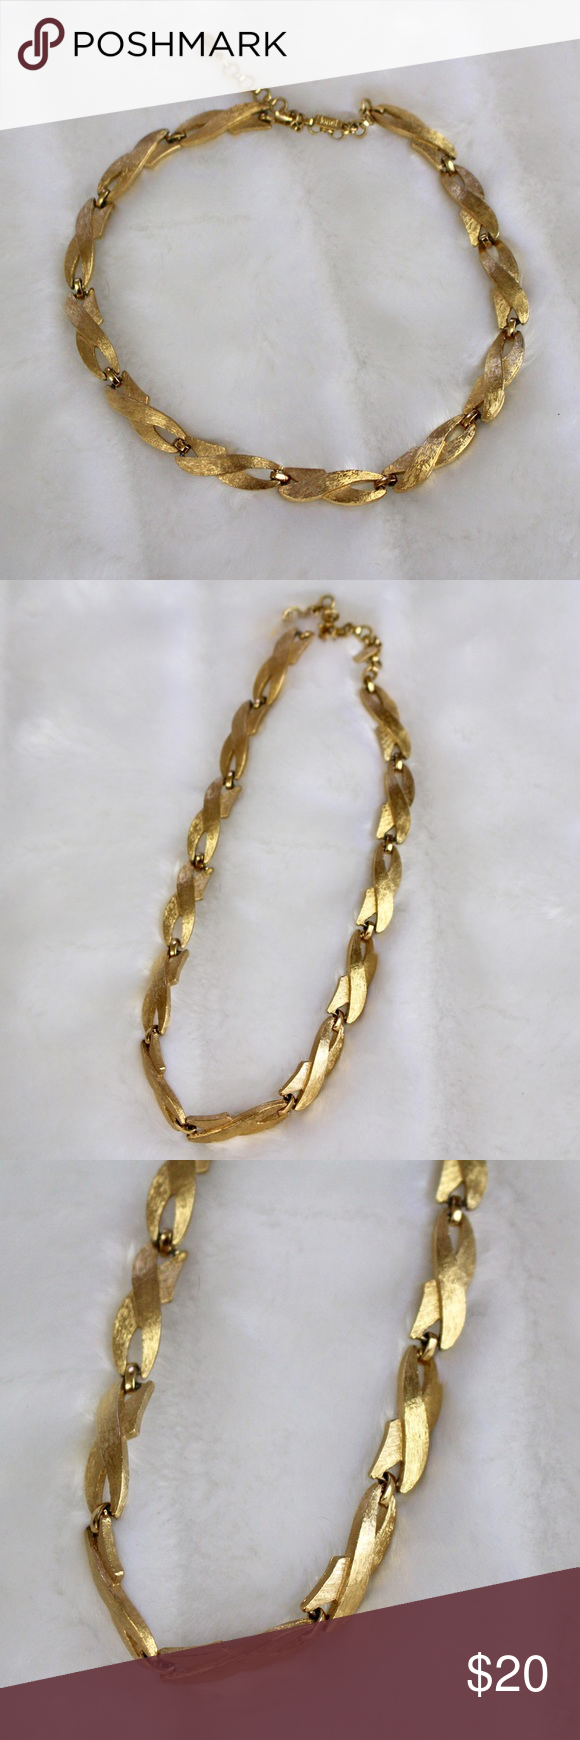 Vintage Monet Gold Necklace Monet jewelry Gold necklaces and